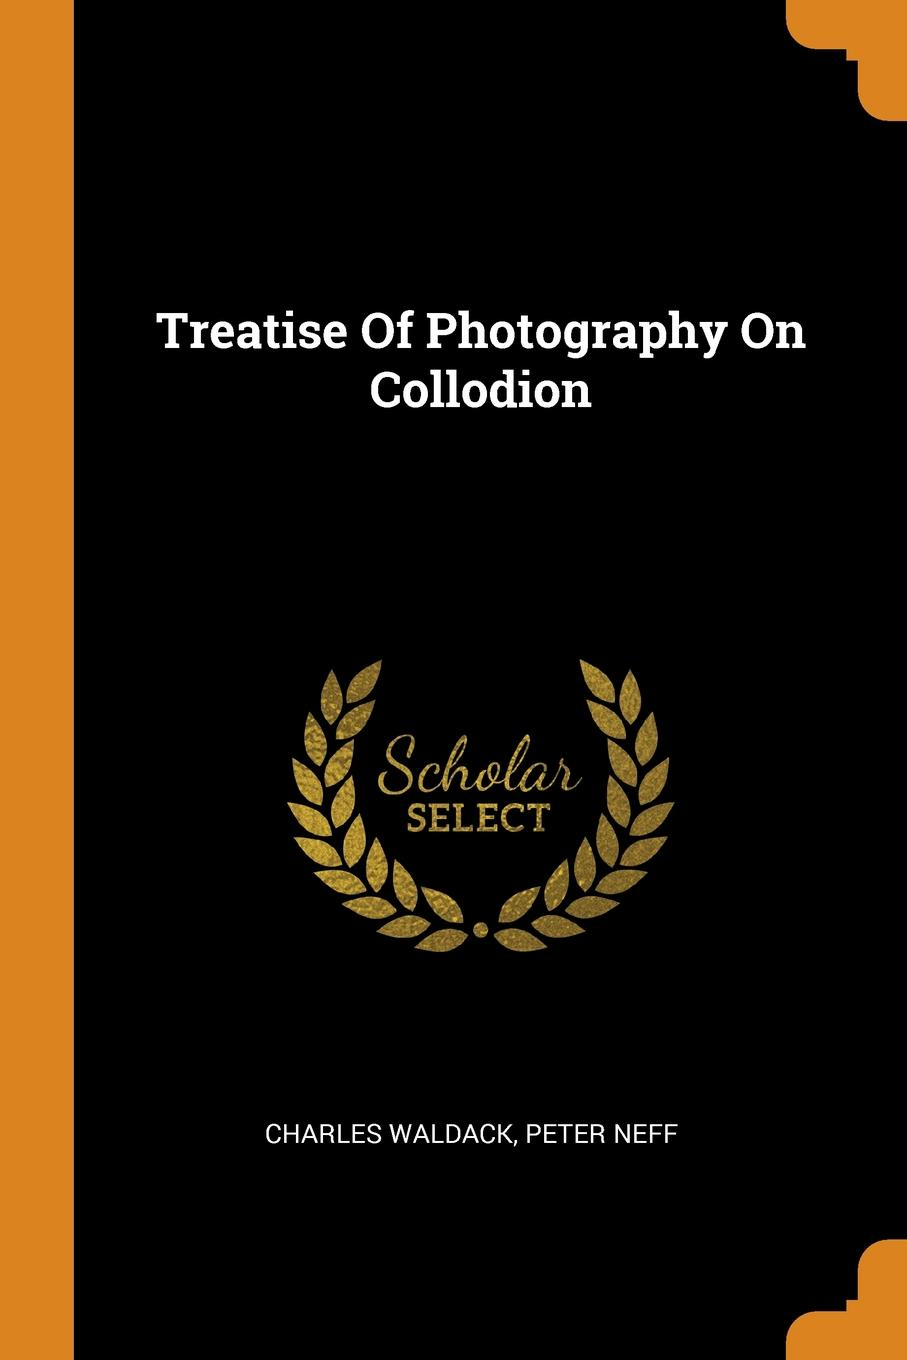 Treatise Of Photography On Collodion